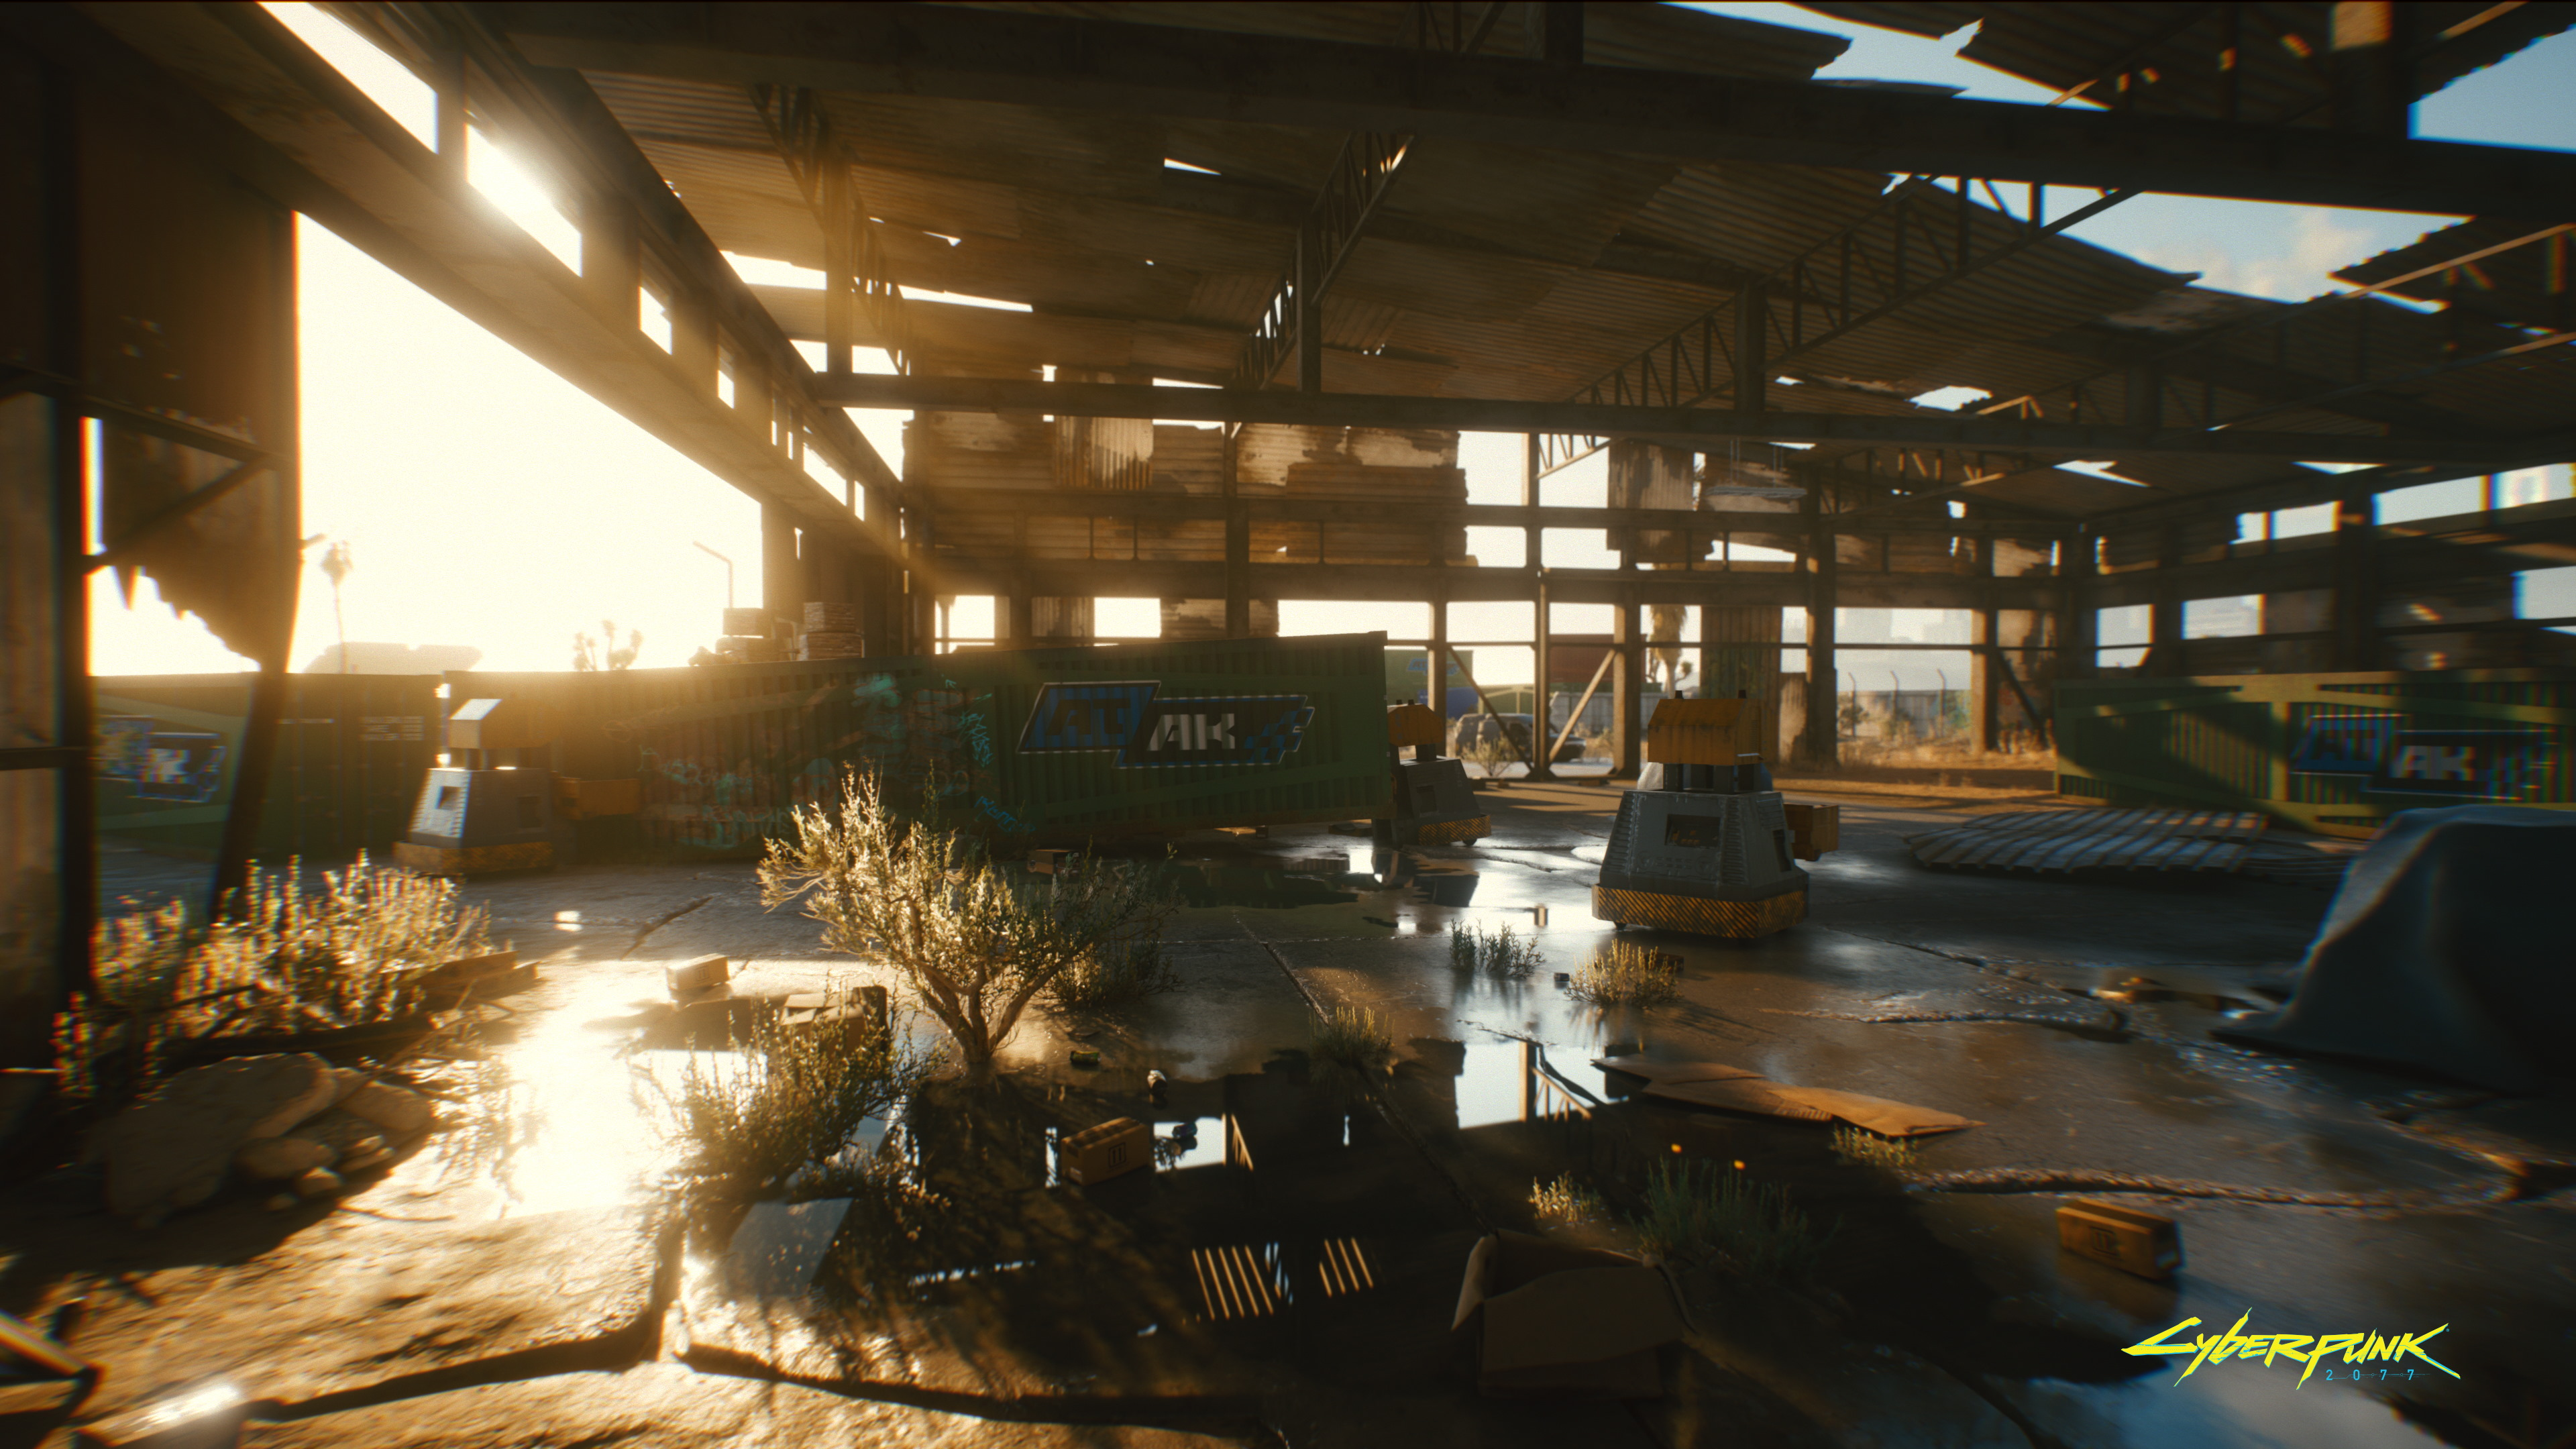 This busted warehouse screenshot shows off ray-traced reflections and diffuse lighting.